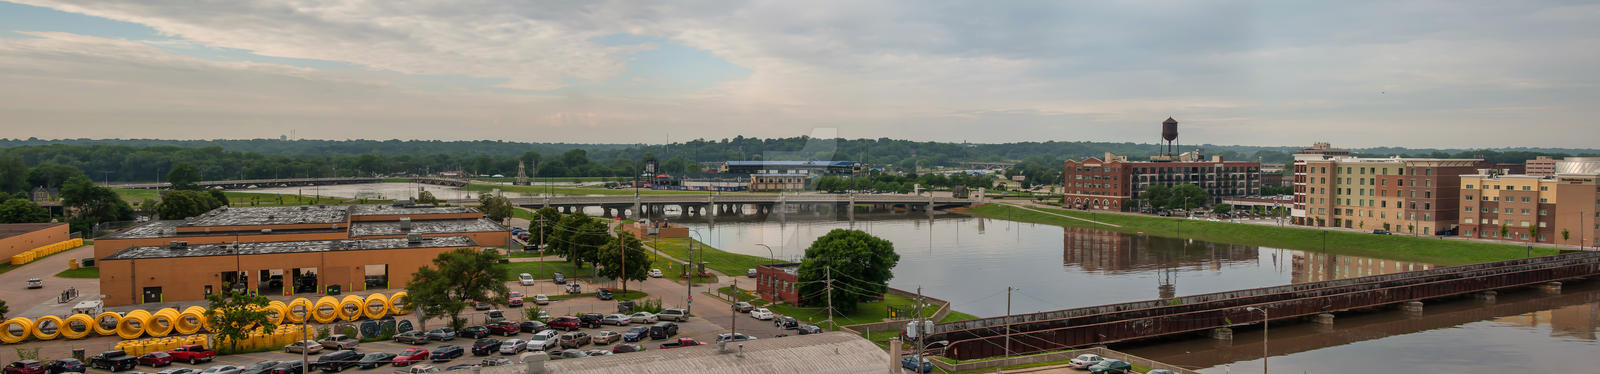 Principal Park And Des Moines River by lividity101